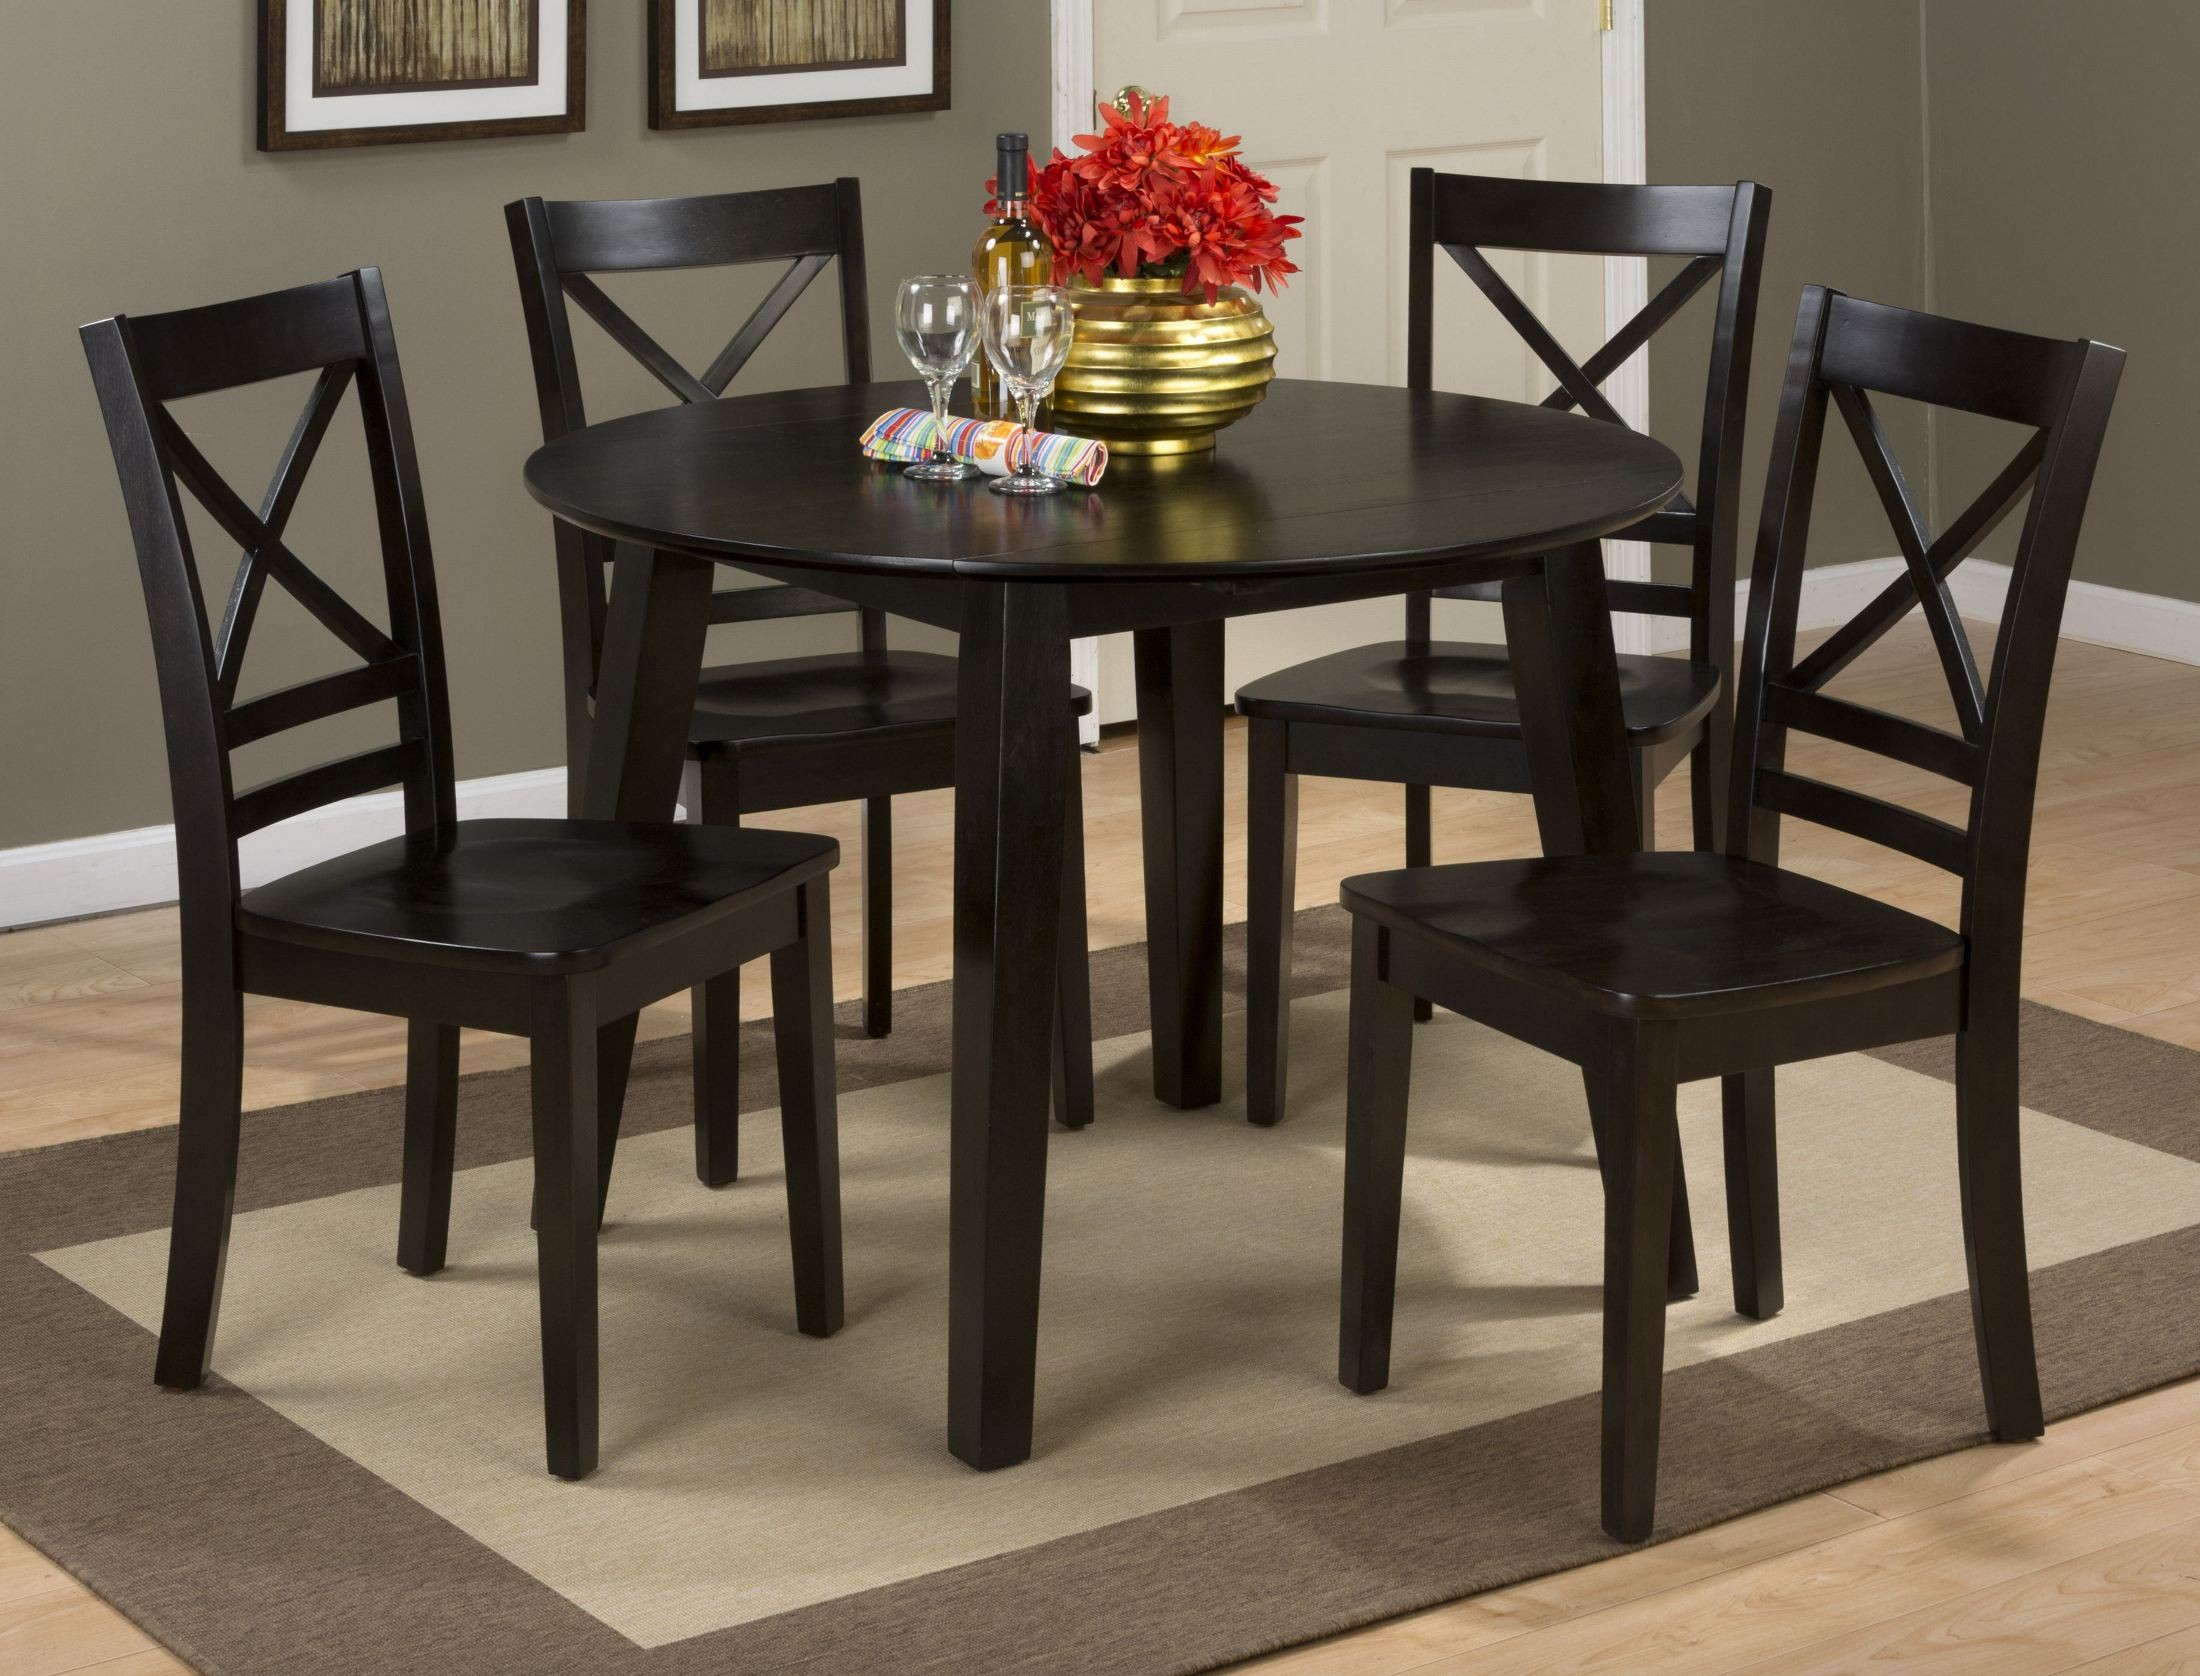 simplicity espresso extendable round drop leaf dining room set from jofran coleman furniture. Black Bedroom Furniture Sets. Home Design Ideas